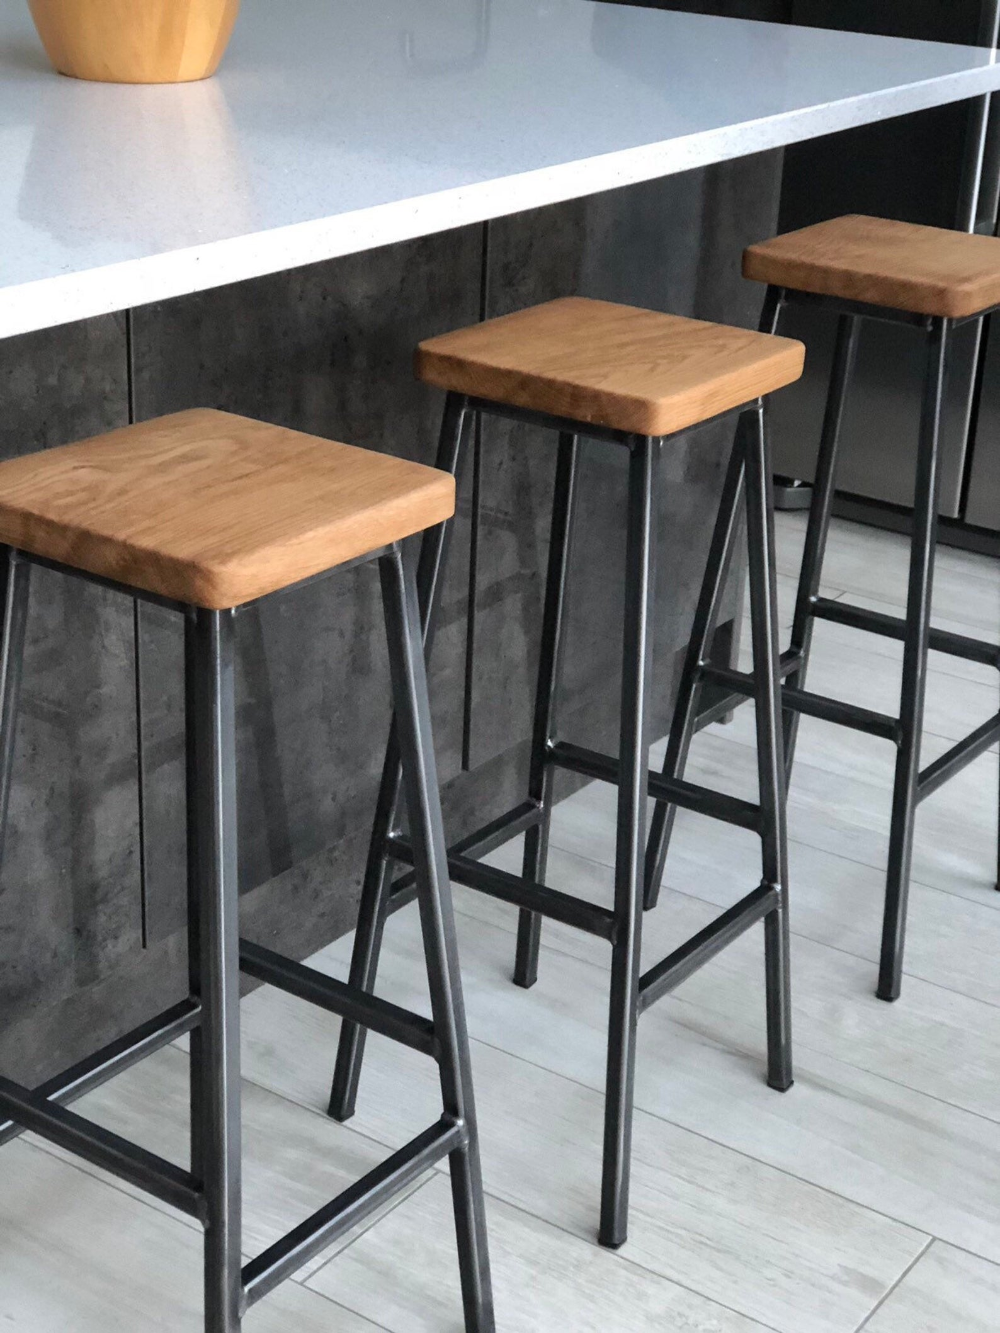 Bertie Fouroaks - Steel Frame Industrial Bar Stool